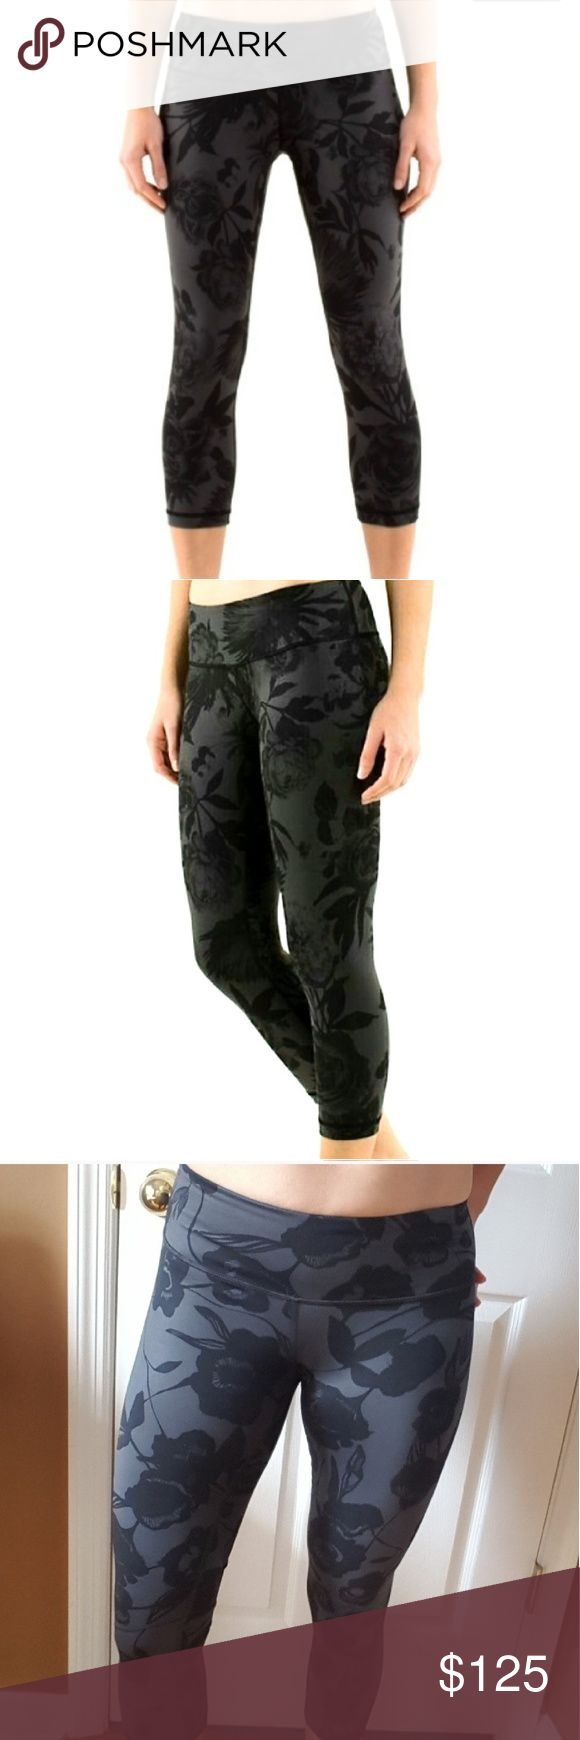 """Lululemon Brisk Bloom Black Floral Crop Leggings 4 NO TRADES. PRICE FIRM.  Beautiful, excellent condition. Worn once. Size 4. 2nd pic is a stock photo. Pics taken in various lighting so you can get an idea of the colors. Reversible.  For reference, I have a 27"""" true waist and 37"""" hip and a size 4 is perfect on me. lululemon athletica Pants Leggings"""